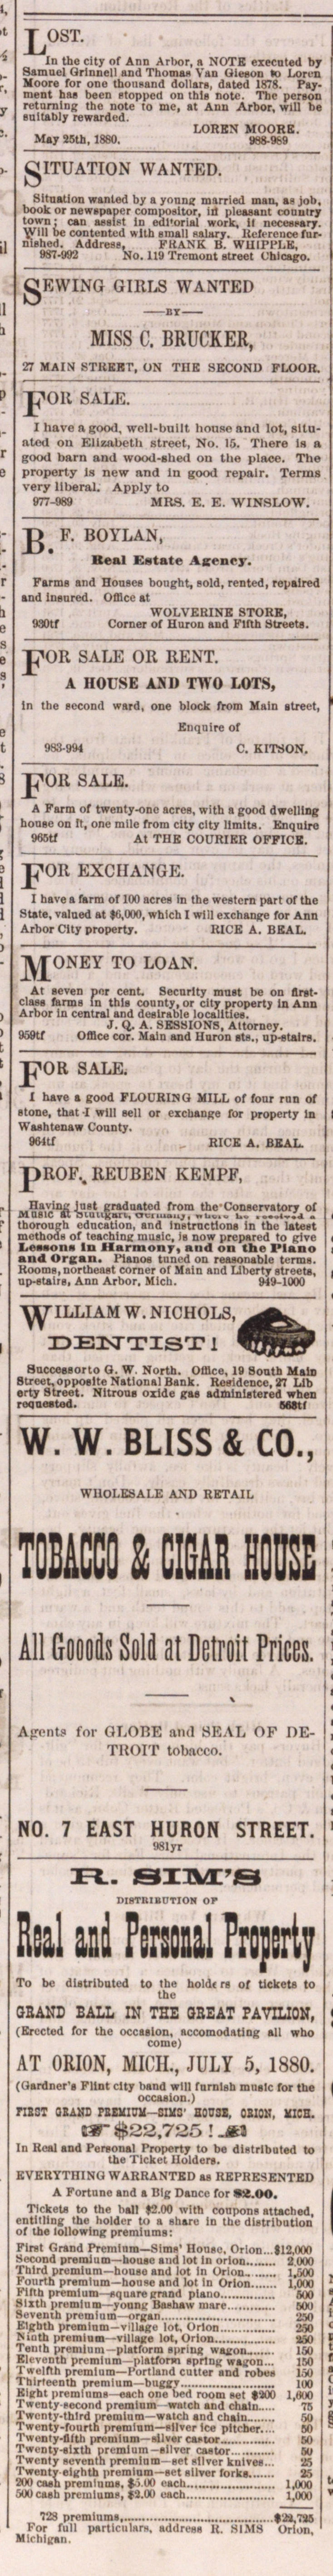 Classified_ad image